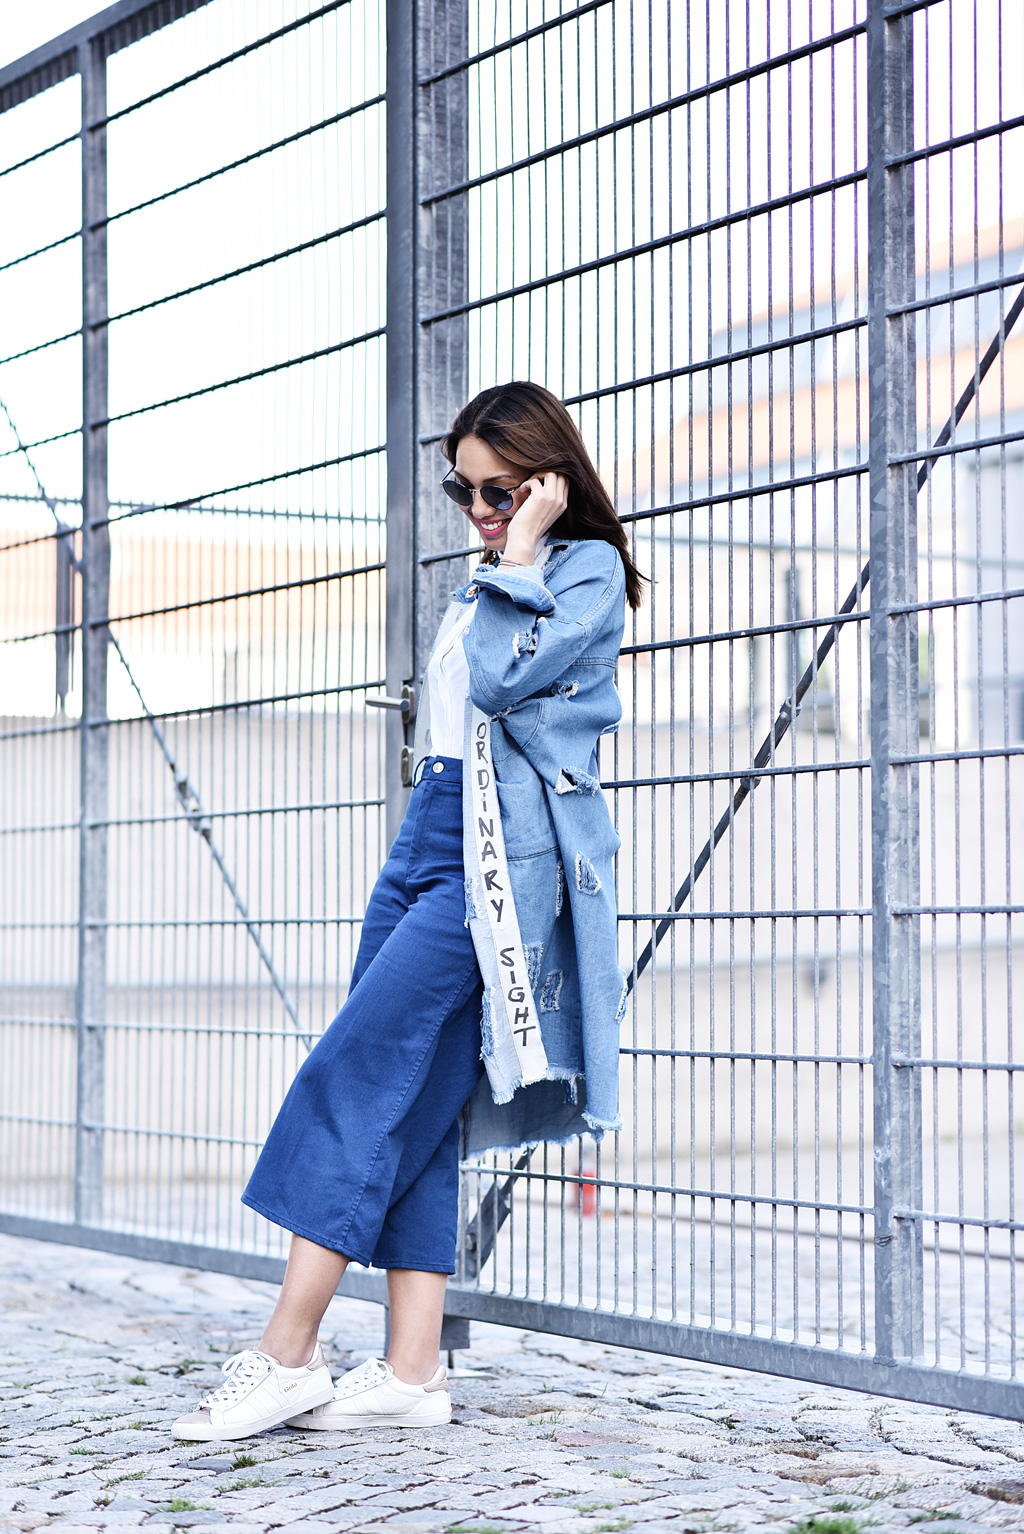 thefashionanarchy_modeblog_fashionblog_styleblog_blogger_culotte_denim_jeans_crop_top_bluse_weiss_outfit_look_gola_sneaker_2